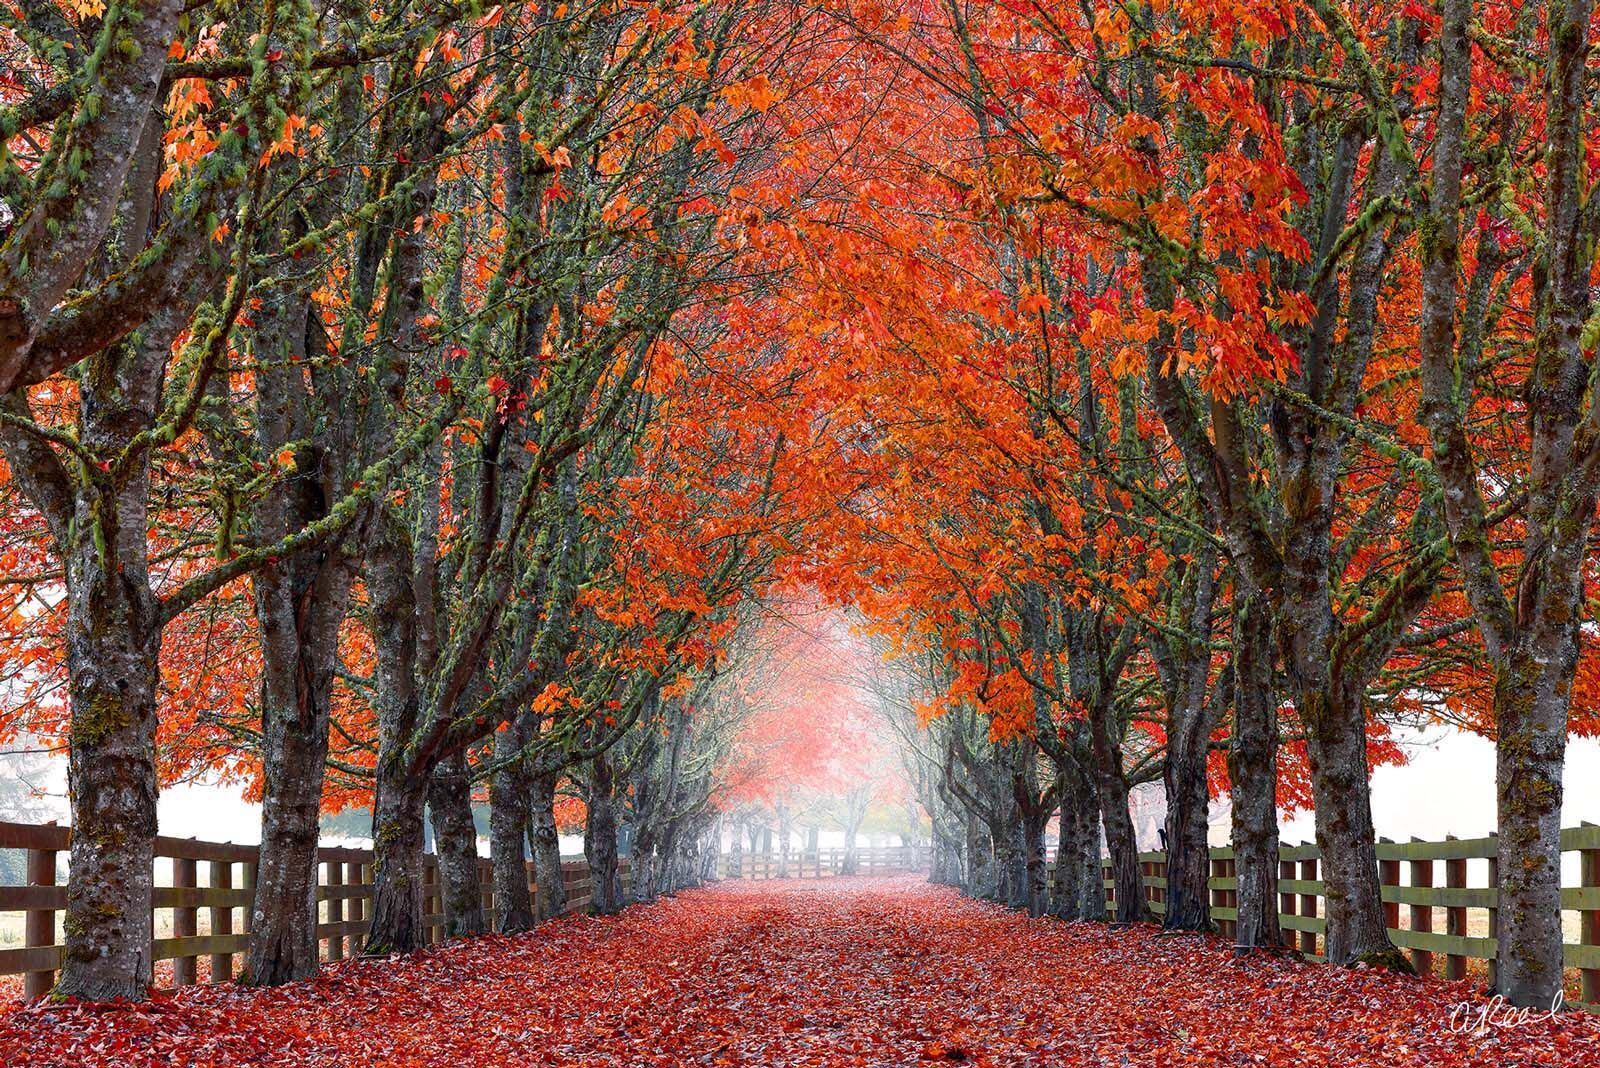 A photograph of a tree tunnel during autumn with red leaves on a foggy morning.